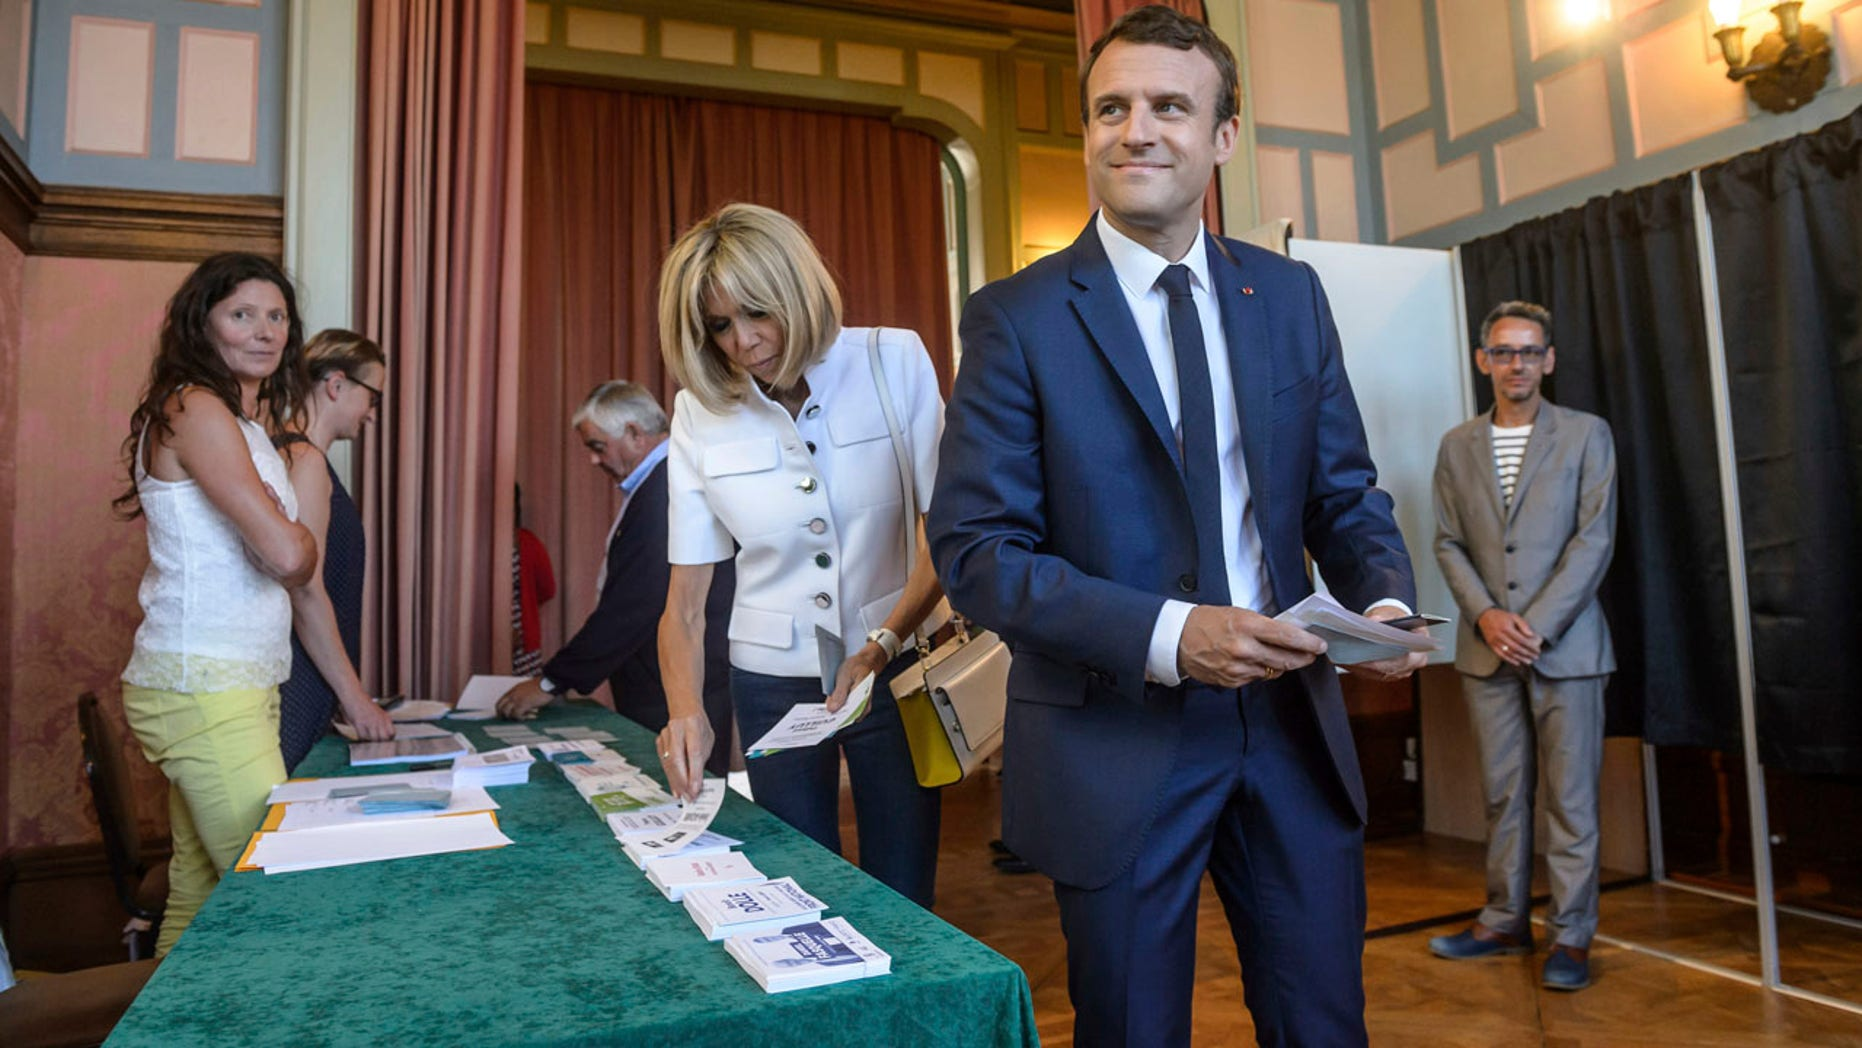 """French President Emmanuel Macron and his wife Brigitte Macron pick up ballots before voting in the first round of the two-stage legislative elections in Le Touquet, northern France, Sunday, June 11, 2017. French voters are choosing legislators in the first round of parliamentary elections, with President Emmanuel Macron's party """"Republic on the Move"""" hoping to win a strong majority in the National Assembly to push through bold labor and security reforms. (Christophe Petit-Tesson/Pool Photo via AP)"""